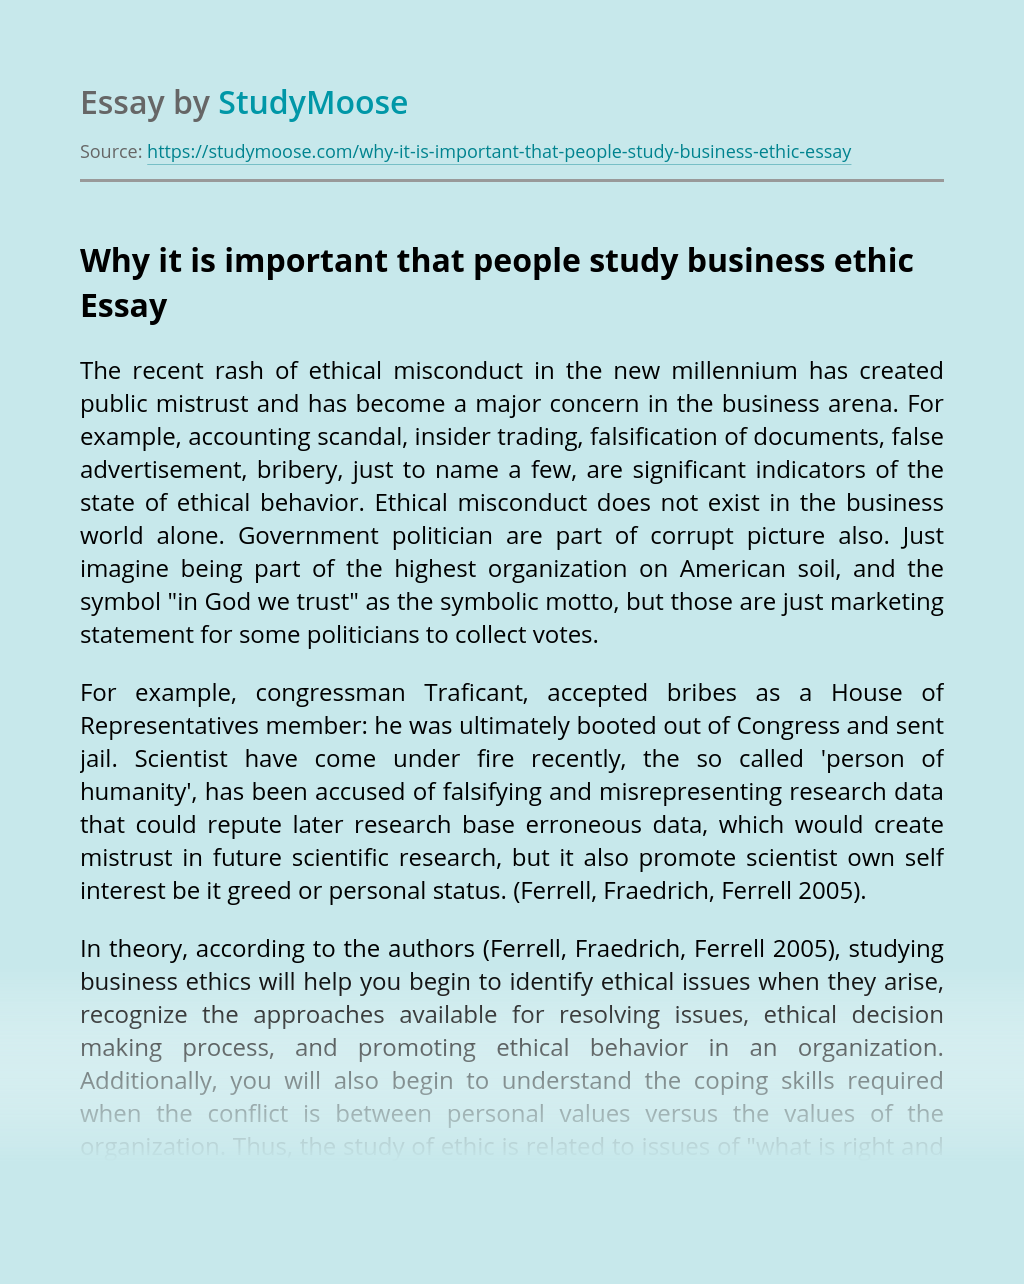 Why it is important that people study business ethic